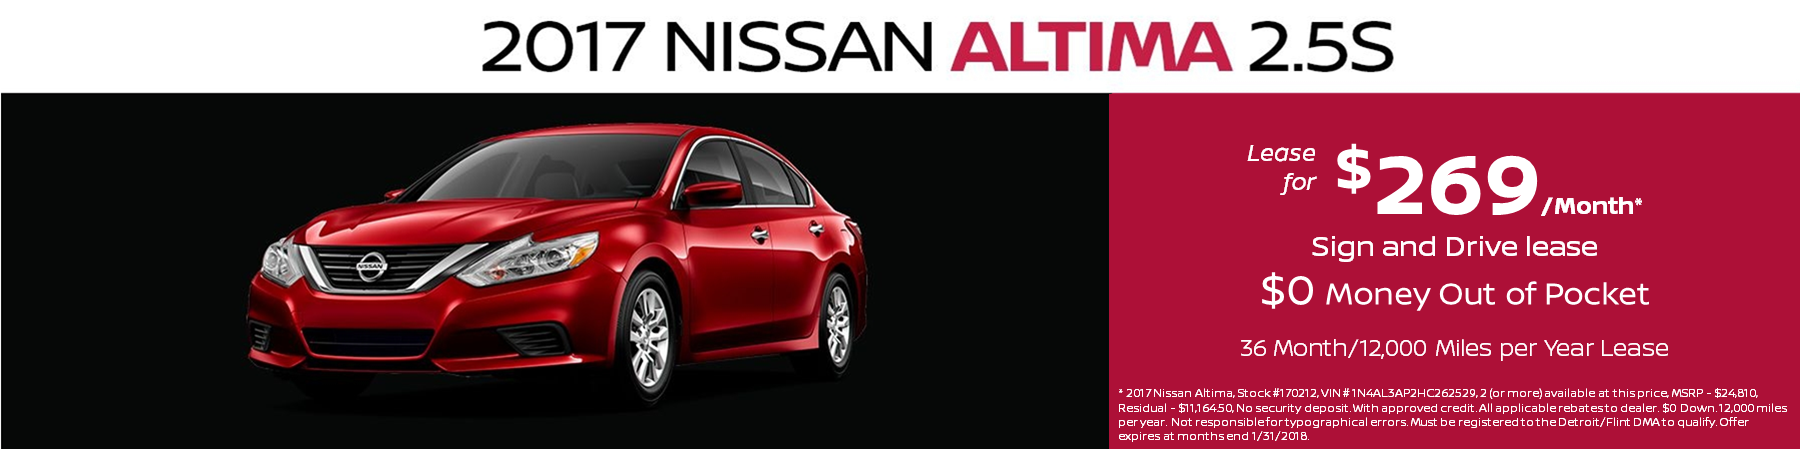 Nissan Altima Lease Special